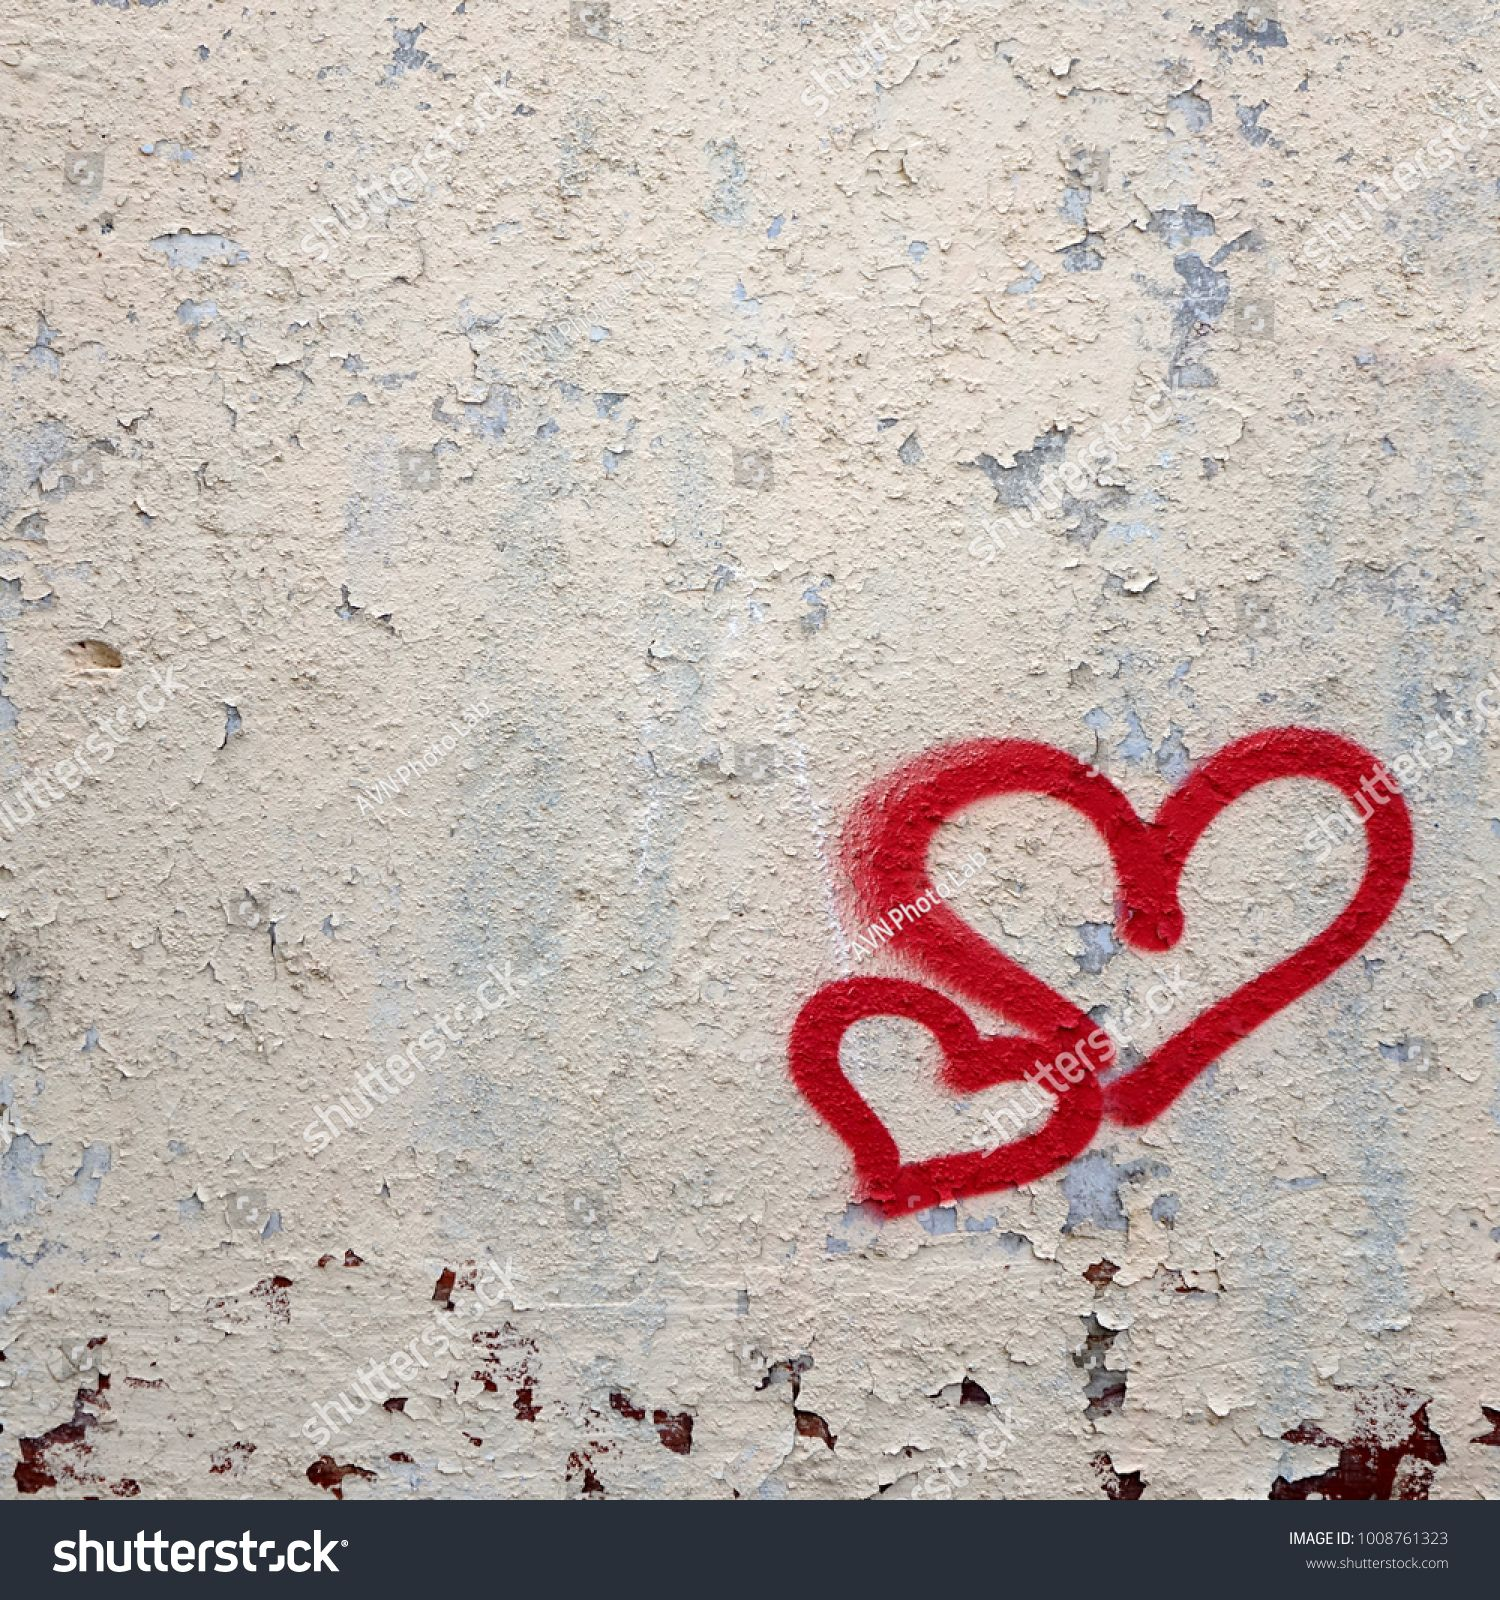 Two Graffiti Love Red Heart Painted On White Concrete Wall Concept For Love Emotion Or Valentine Day Abstract Love Ve Heart Painting Avenger Artwork Graffiti